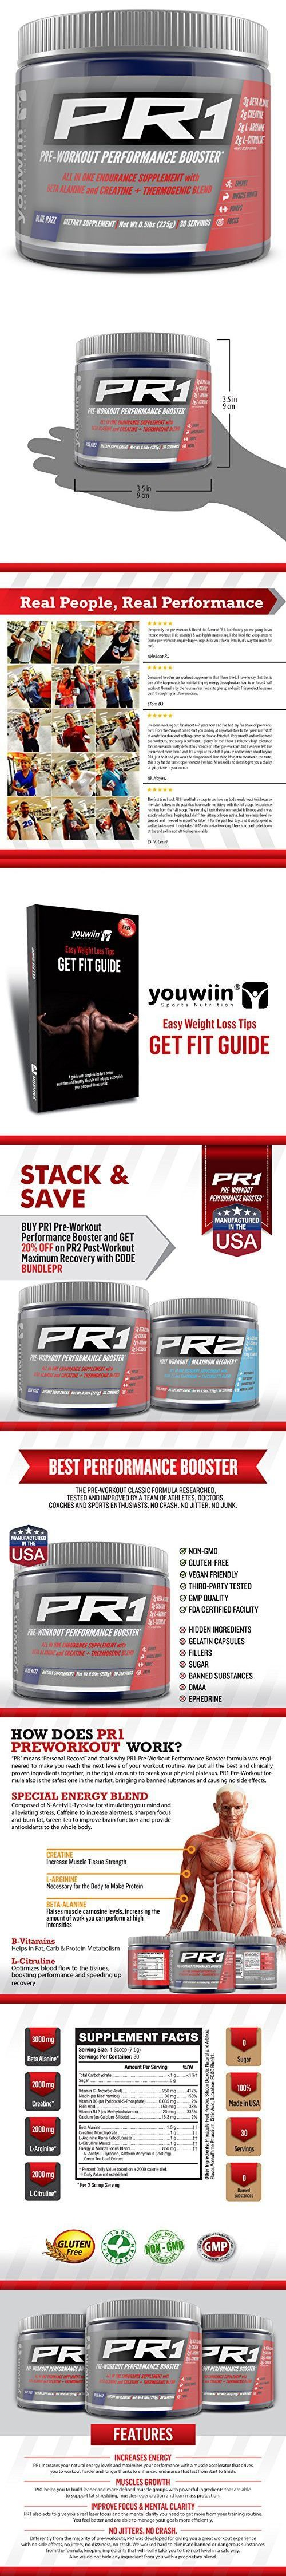 #1 Rated PR1 Pre Workout with Creatine, Beta Alanine, Amino Acids, Thermogenic   Performance Booster   Complete Nutritional Bodybuilding Supplement   30 Servings (Blue Razz)   Youwiin Sports Nutrition #completenutrition,